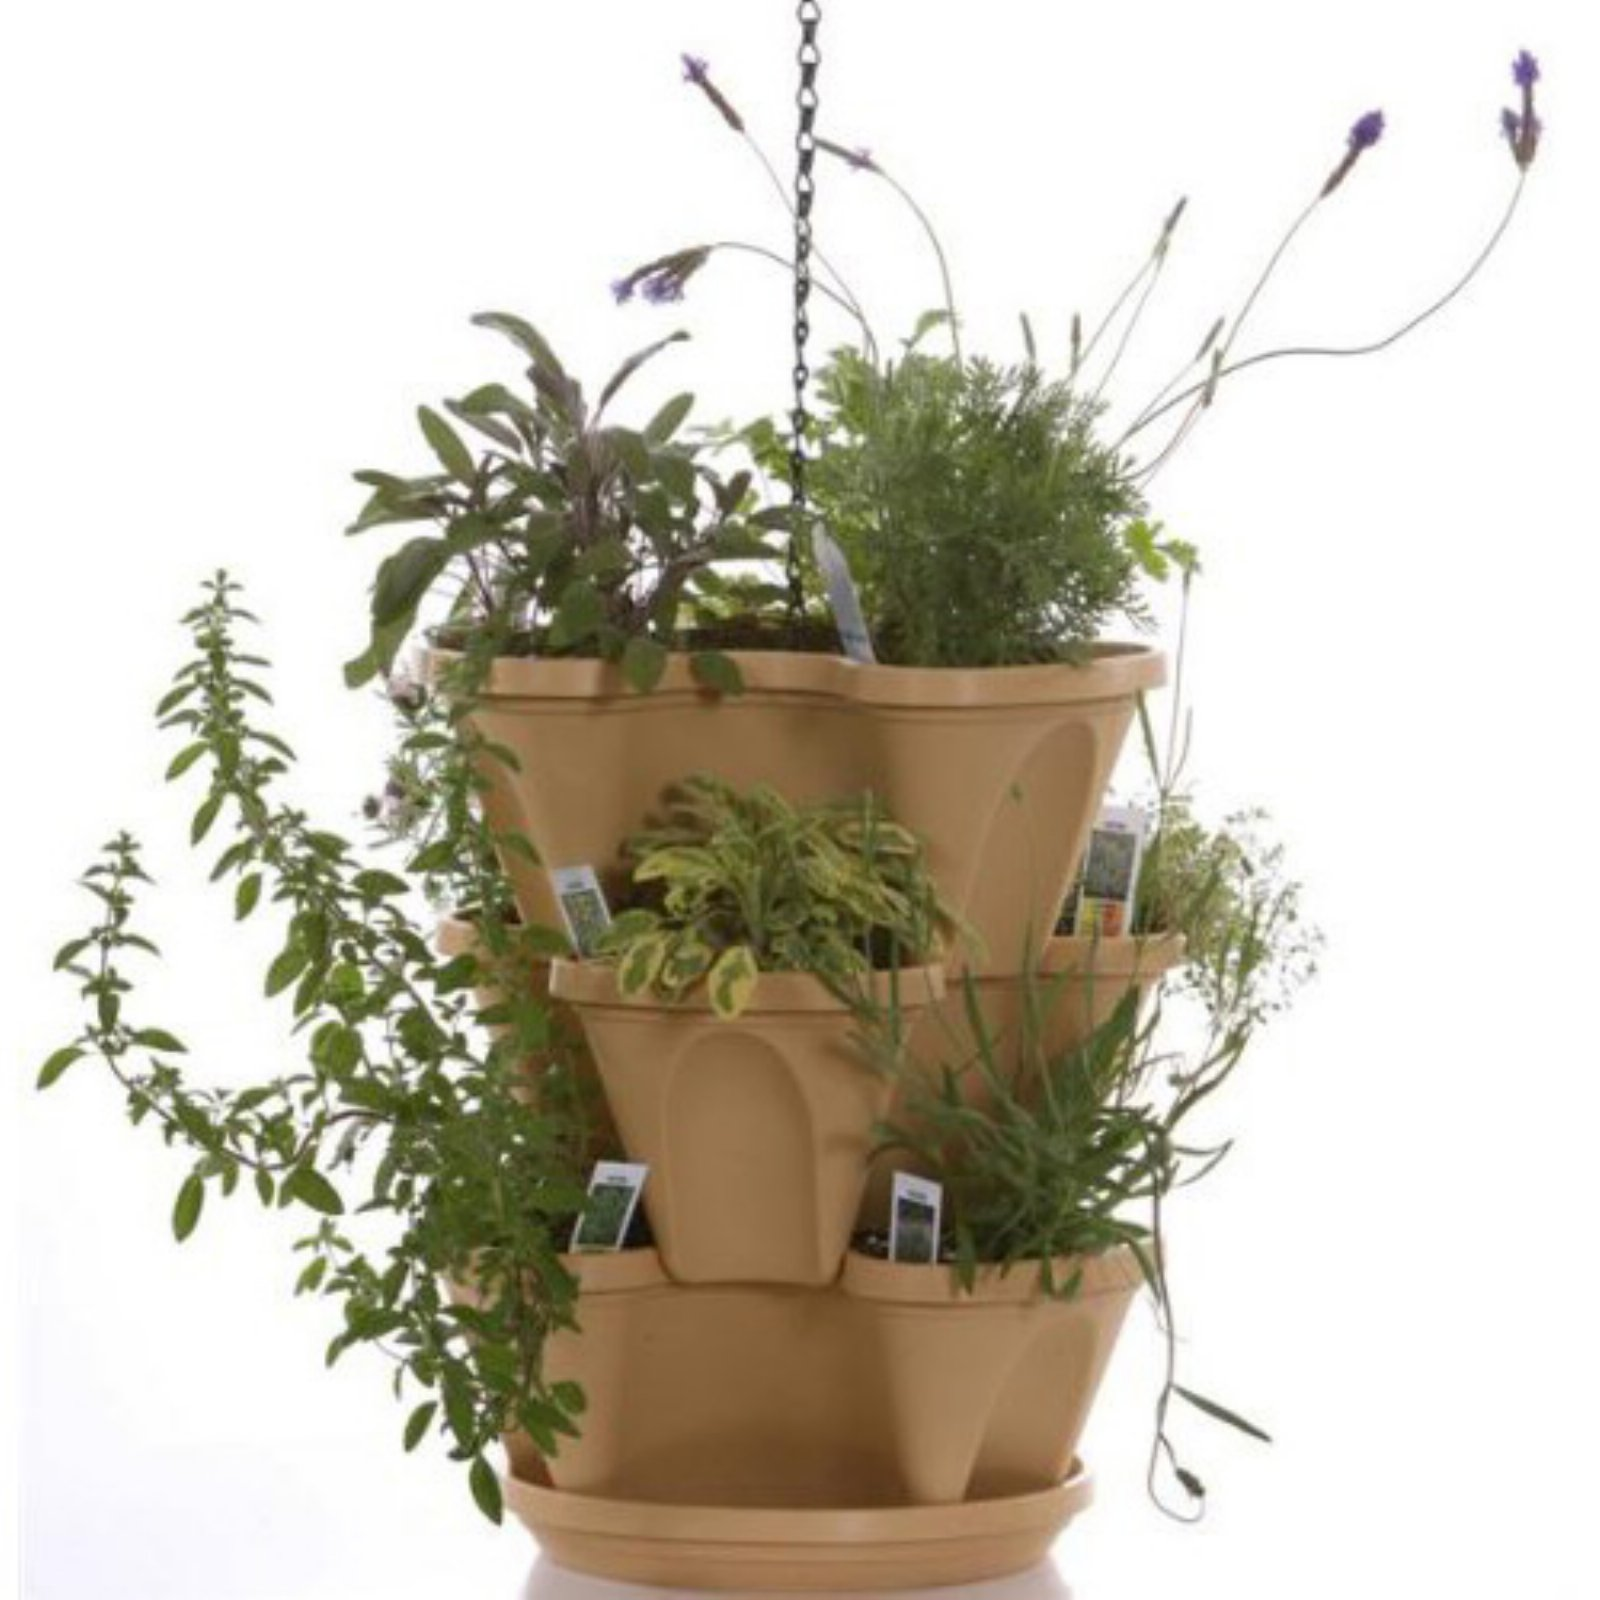 Natures Distributing 12 in. 3 Tier Stacking Planters